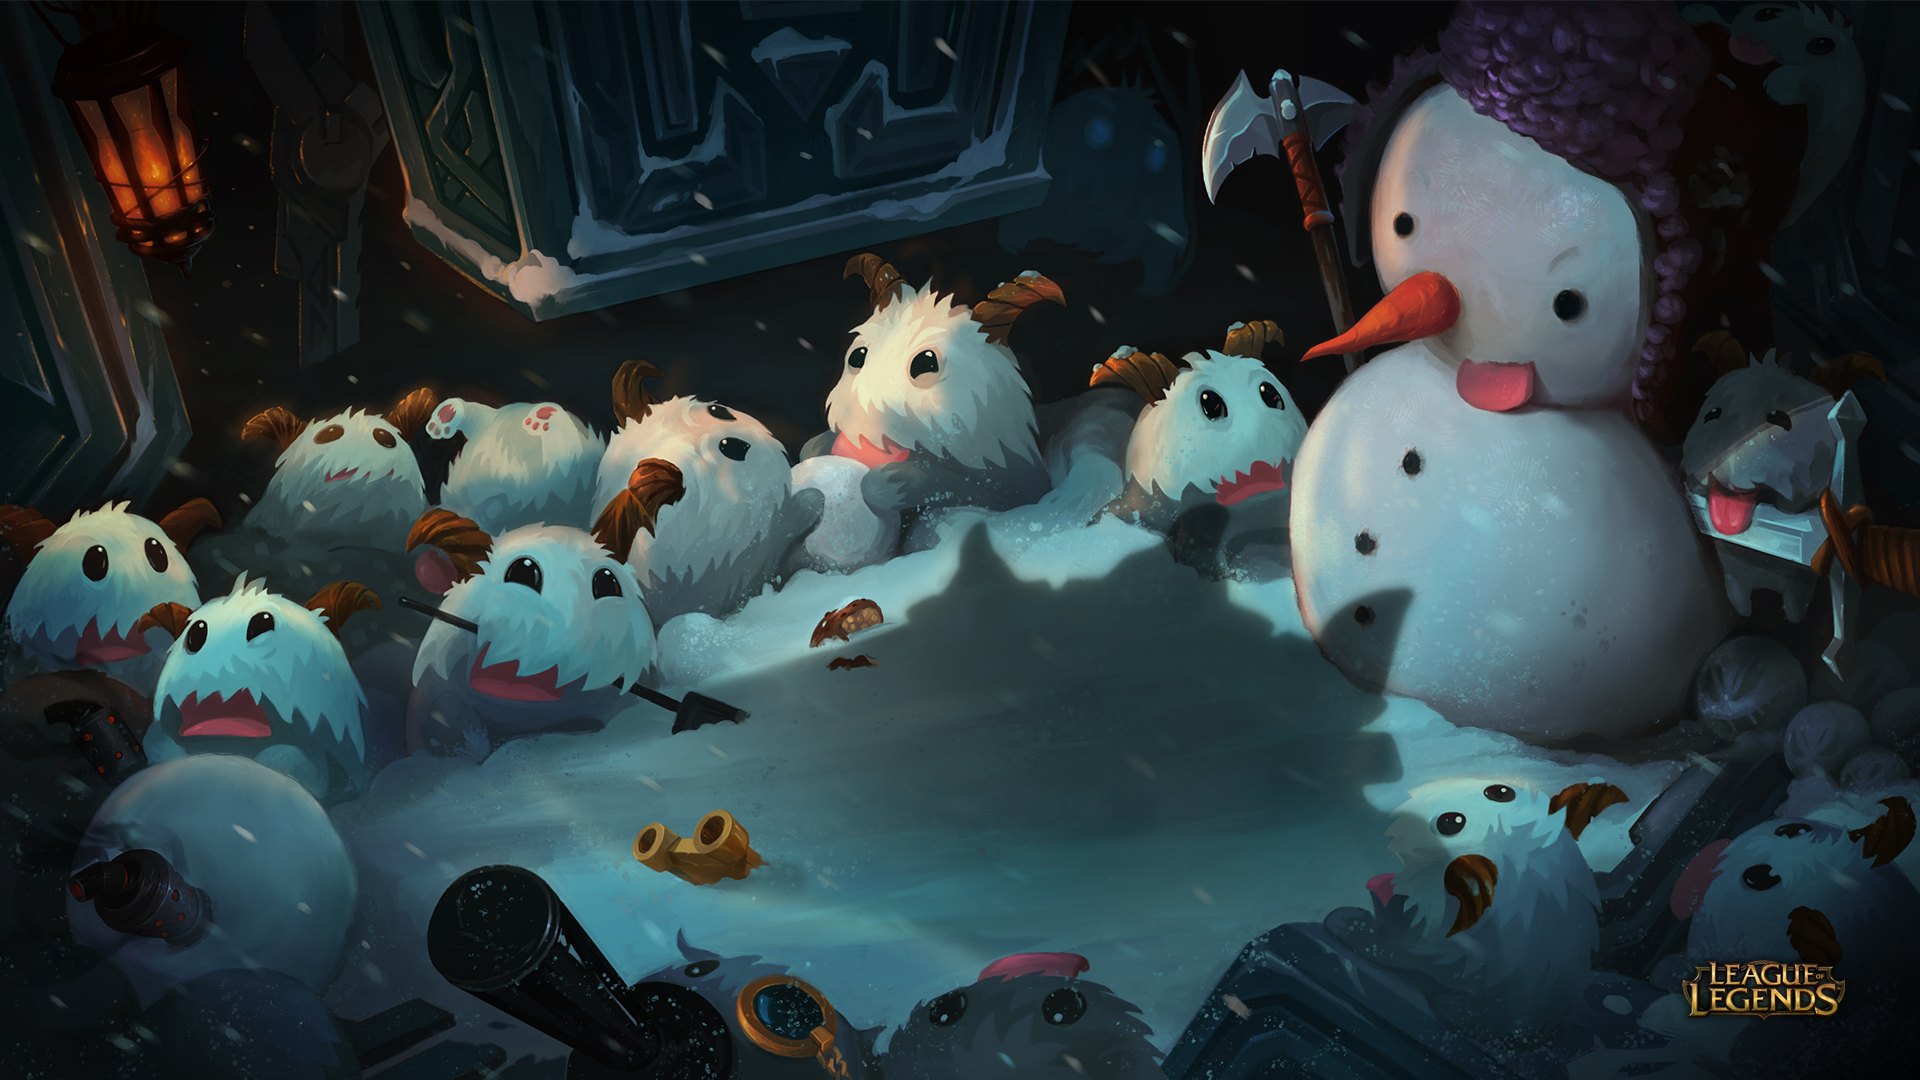 League of Legends Poros wallpaper